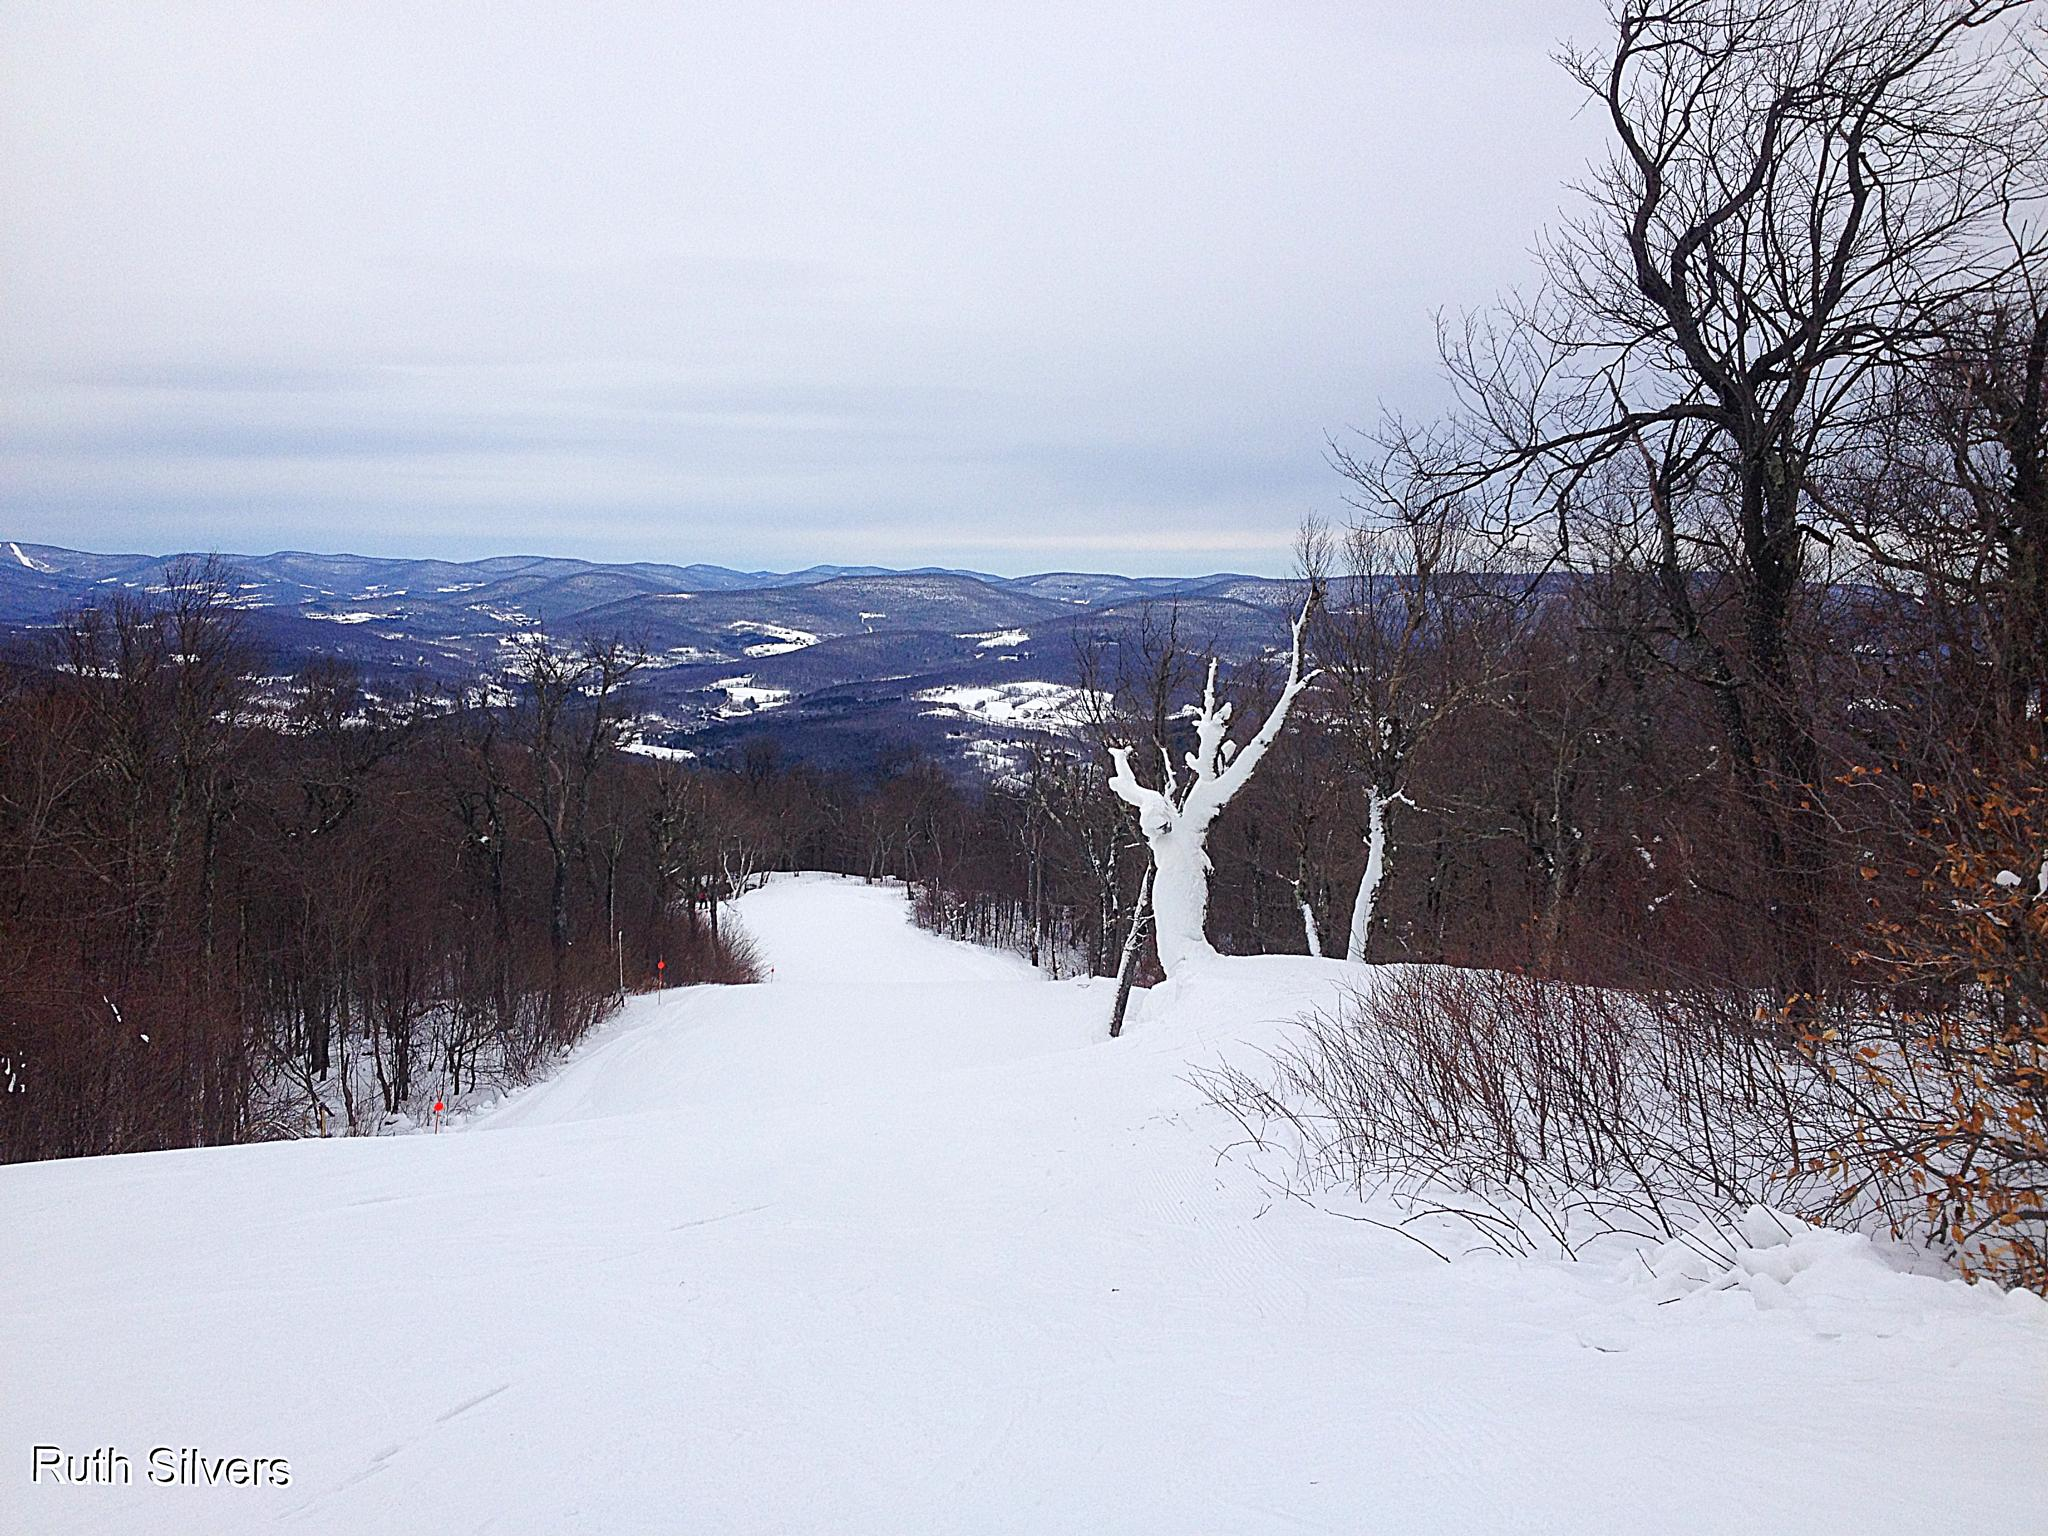 Peaks of the Catskill Mountains by Ruth Silvers